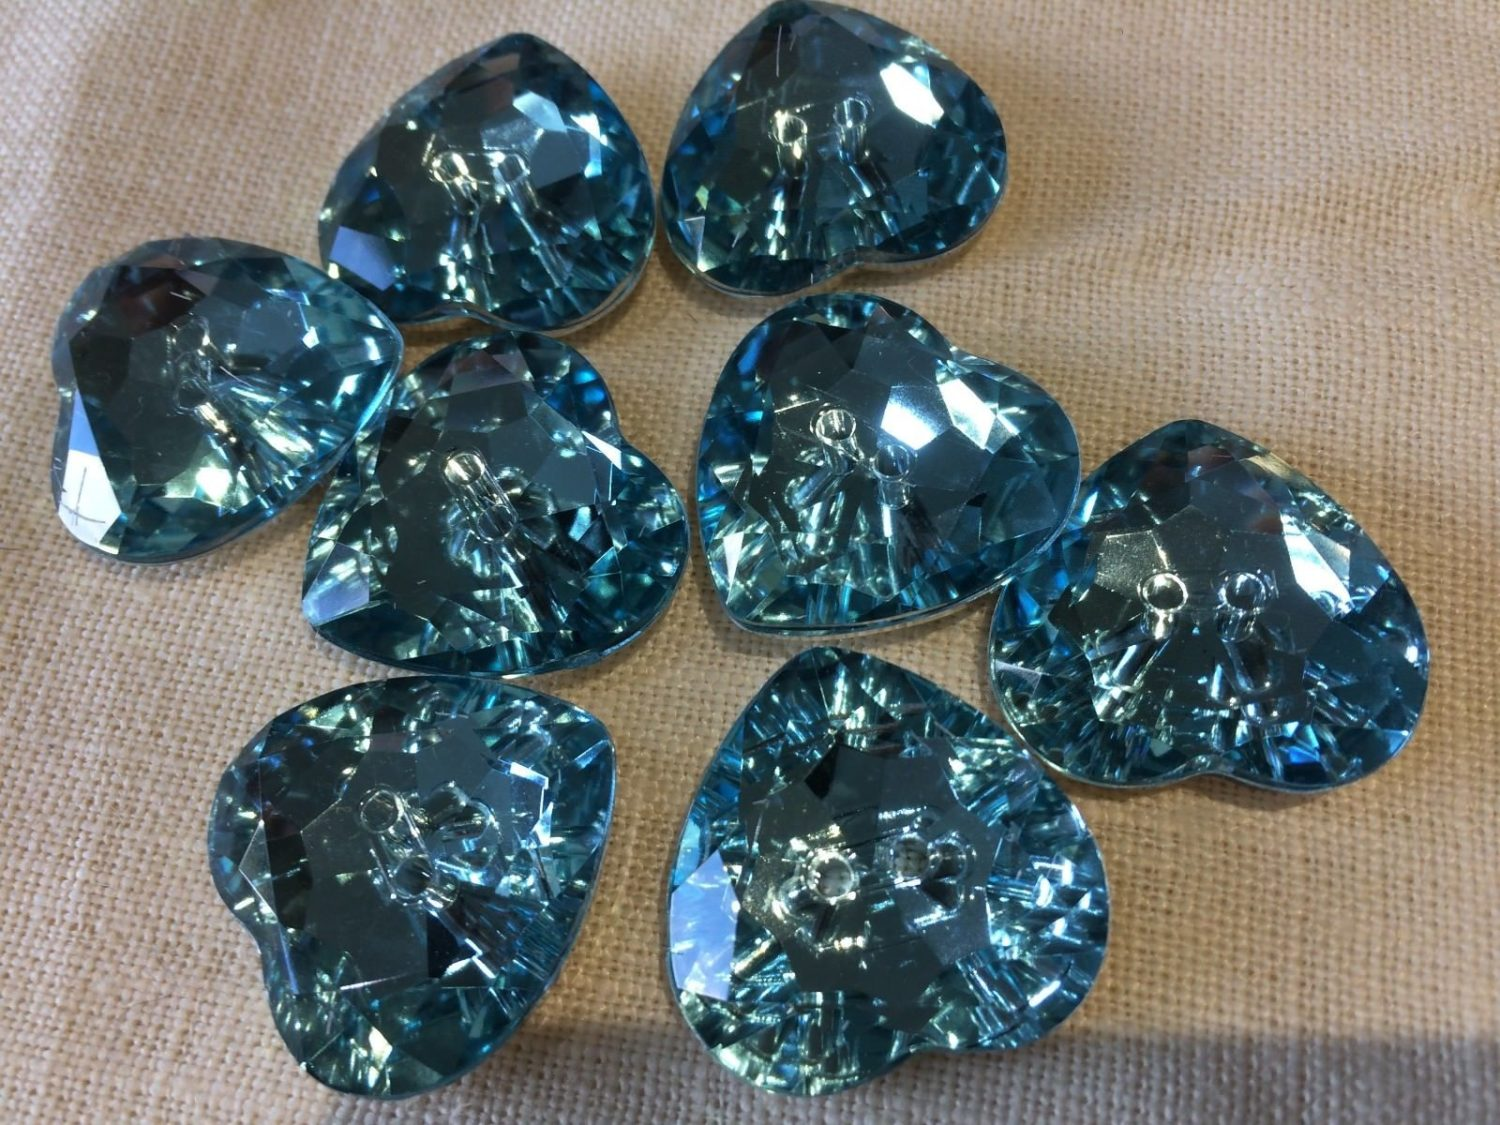 Large 2 Hole Turquoise Blue Sparkly Acrylic Crystal Heart Buttons - 29mm